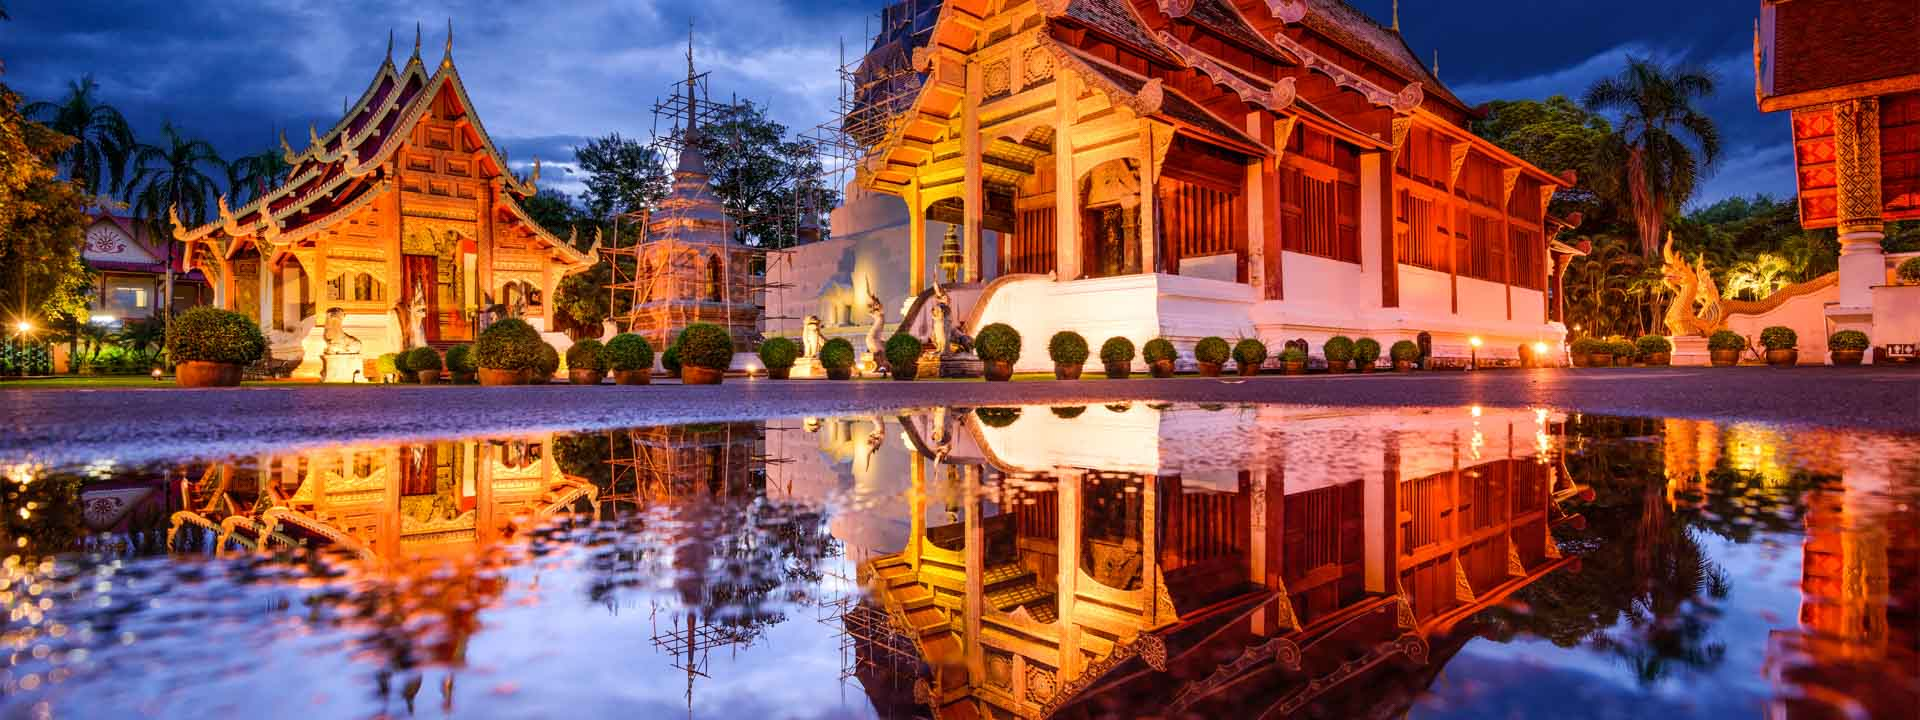 Incredible Vietnam and Cambodia and Thai Lan Tour 26 days